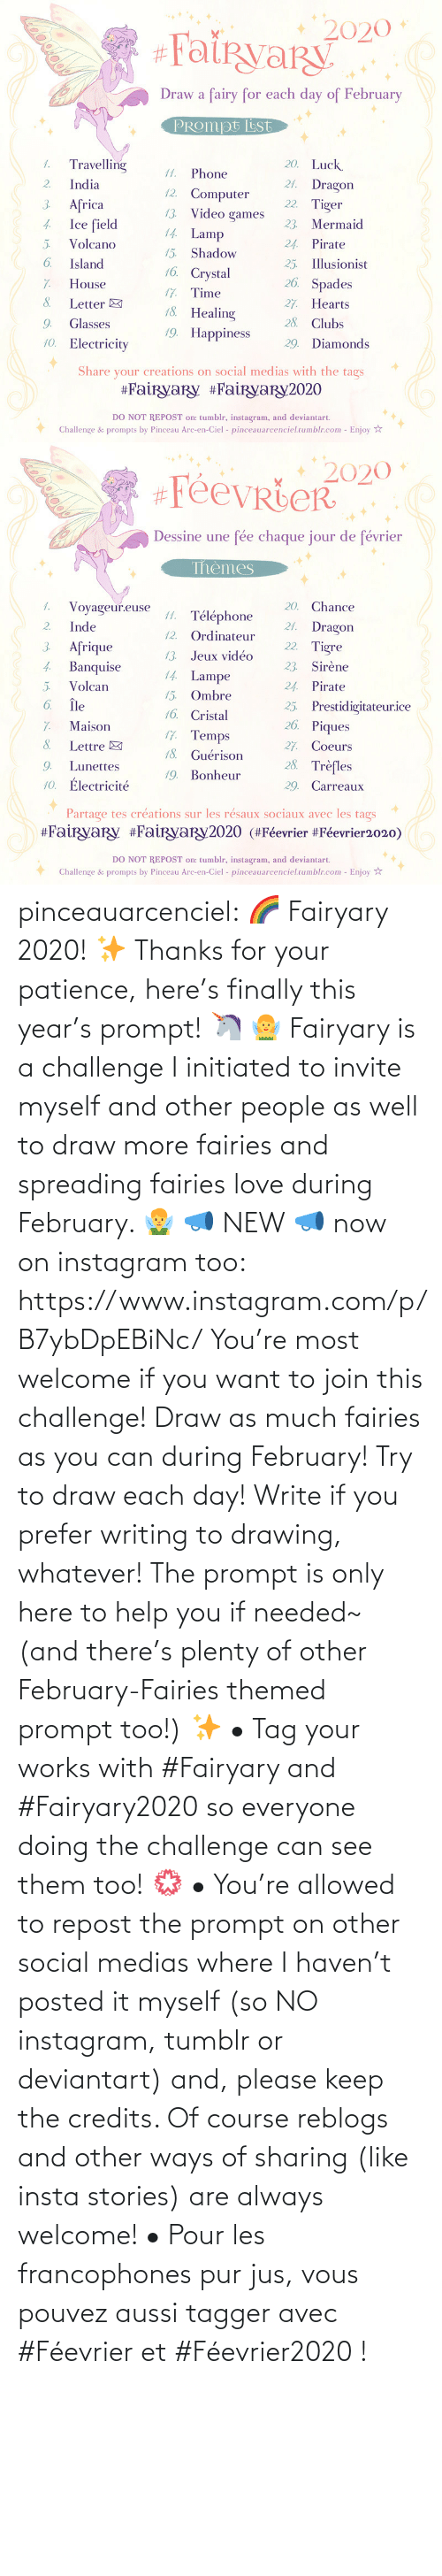 of course: pinceauarcenciel: 🌈 Fairyary 2020! ✨ Thanks for your patience, here's finally this year's prompt! 🦄 🧚‍♀️ Fairyary is a challenge I initiated to invite myself and other people as well to draw more fairies and spreading fairies love during February. 🧚‍♂️ 📣 NEW 📣 now on instagram too: https://www.instagram.com/p/B7ybDpEBiNc/ You're most welcome if you want to join this challenge! Draw as much fairies as you can during February! Try to draw each day! Write if you prefer writing to drawing, whatever! The prompt is only here to help you if needed~ (and there's plenty of other February-Fairies themed prompt too!) ✨ • Tag your works with #Fairyary and #Fairyary2020 so everyone doing the challenge can see them too! 💮 • You're allowed to repost the prompt on other social medias where I haven't posted it myself (so NO instagram, tumblr or deviantart) and, please keep the credits. Of course reblogs and other ways of sharing (like insta stories) are always welcome!